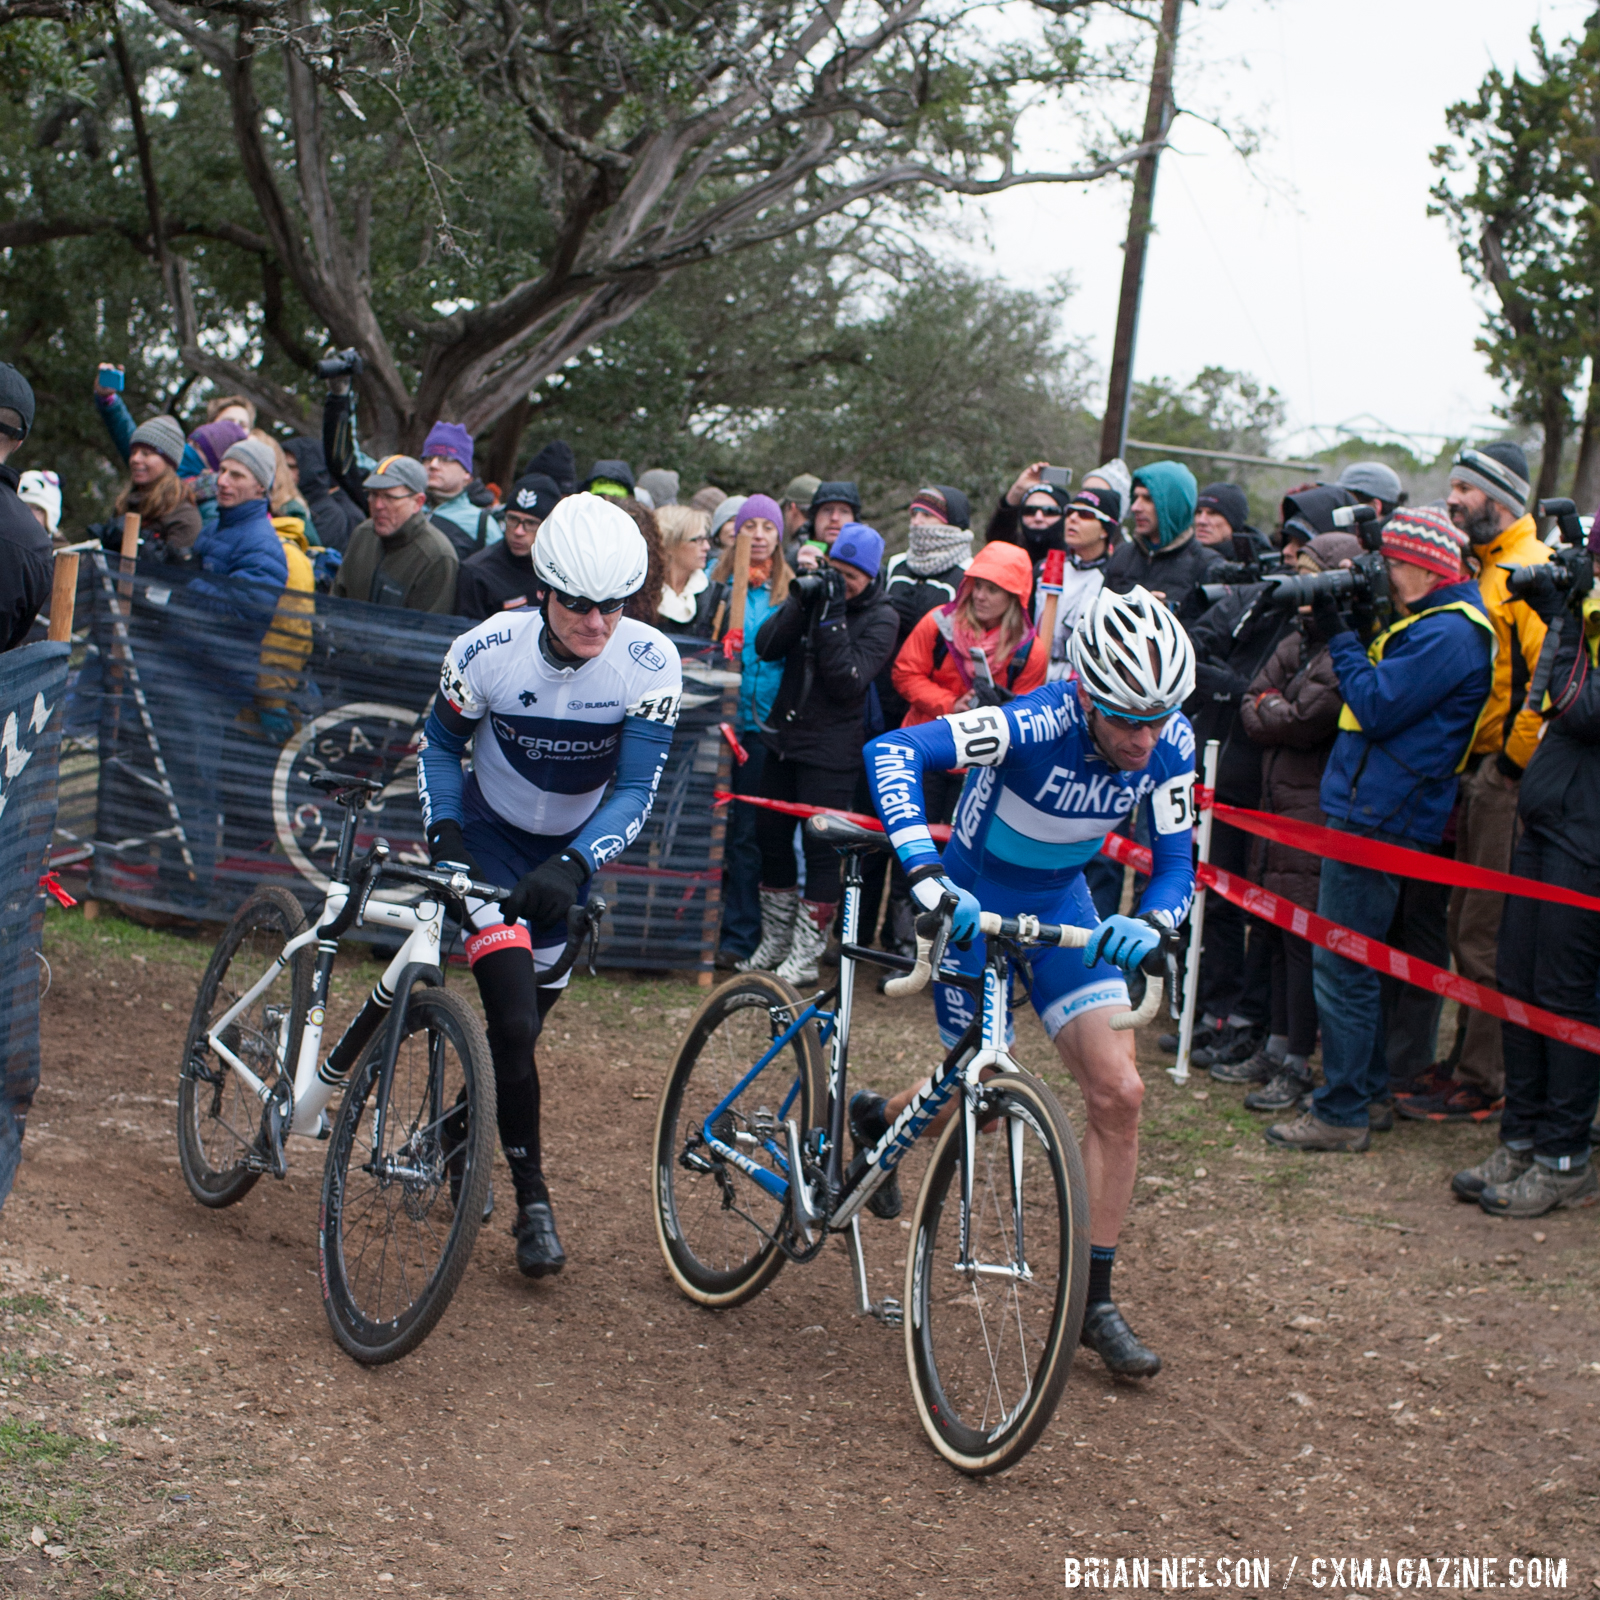 roger-aspholm-finkraft-cycling-and-kevin-obrien-groove-subaru-excel-sports-brian-nelson